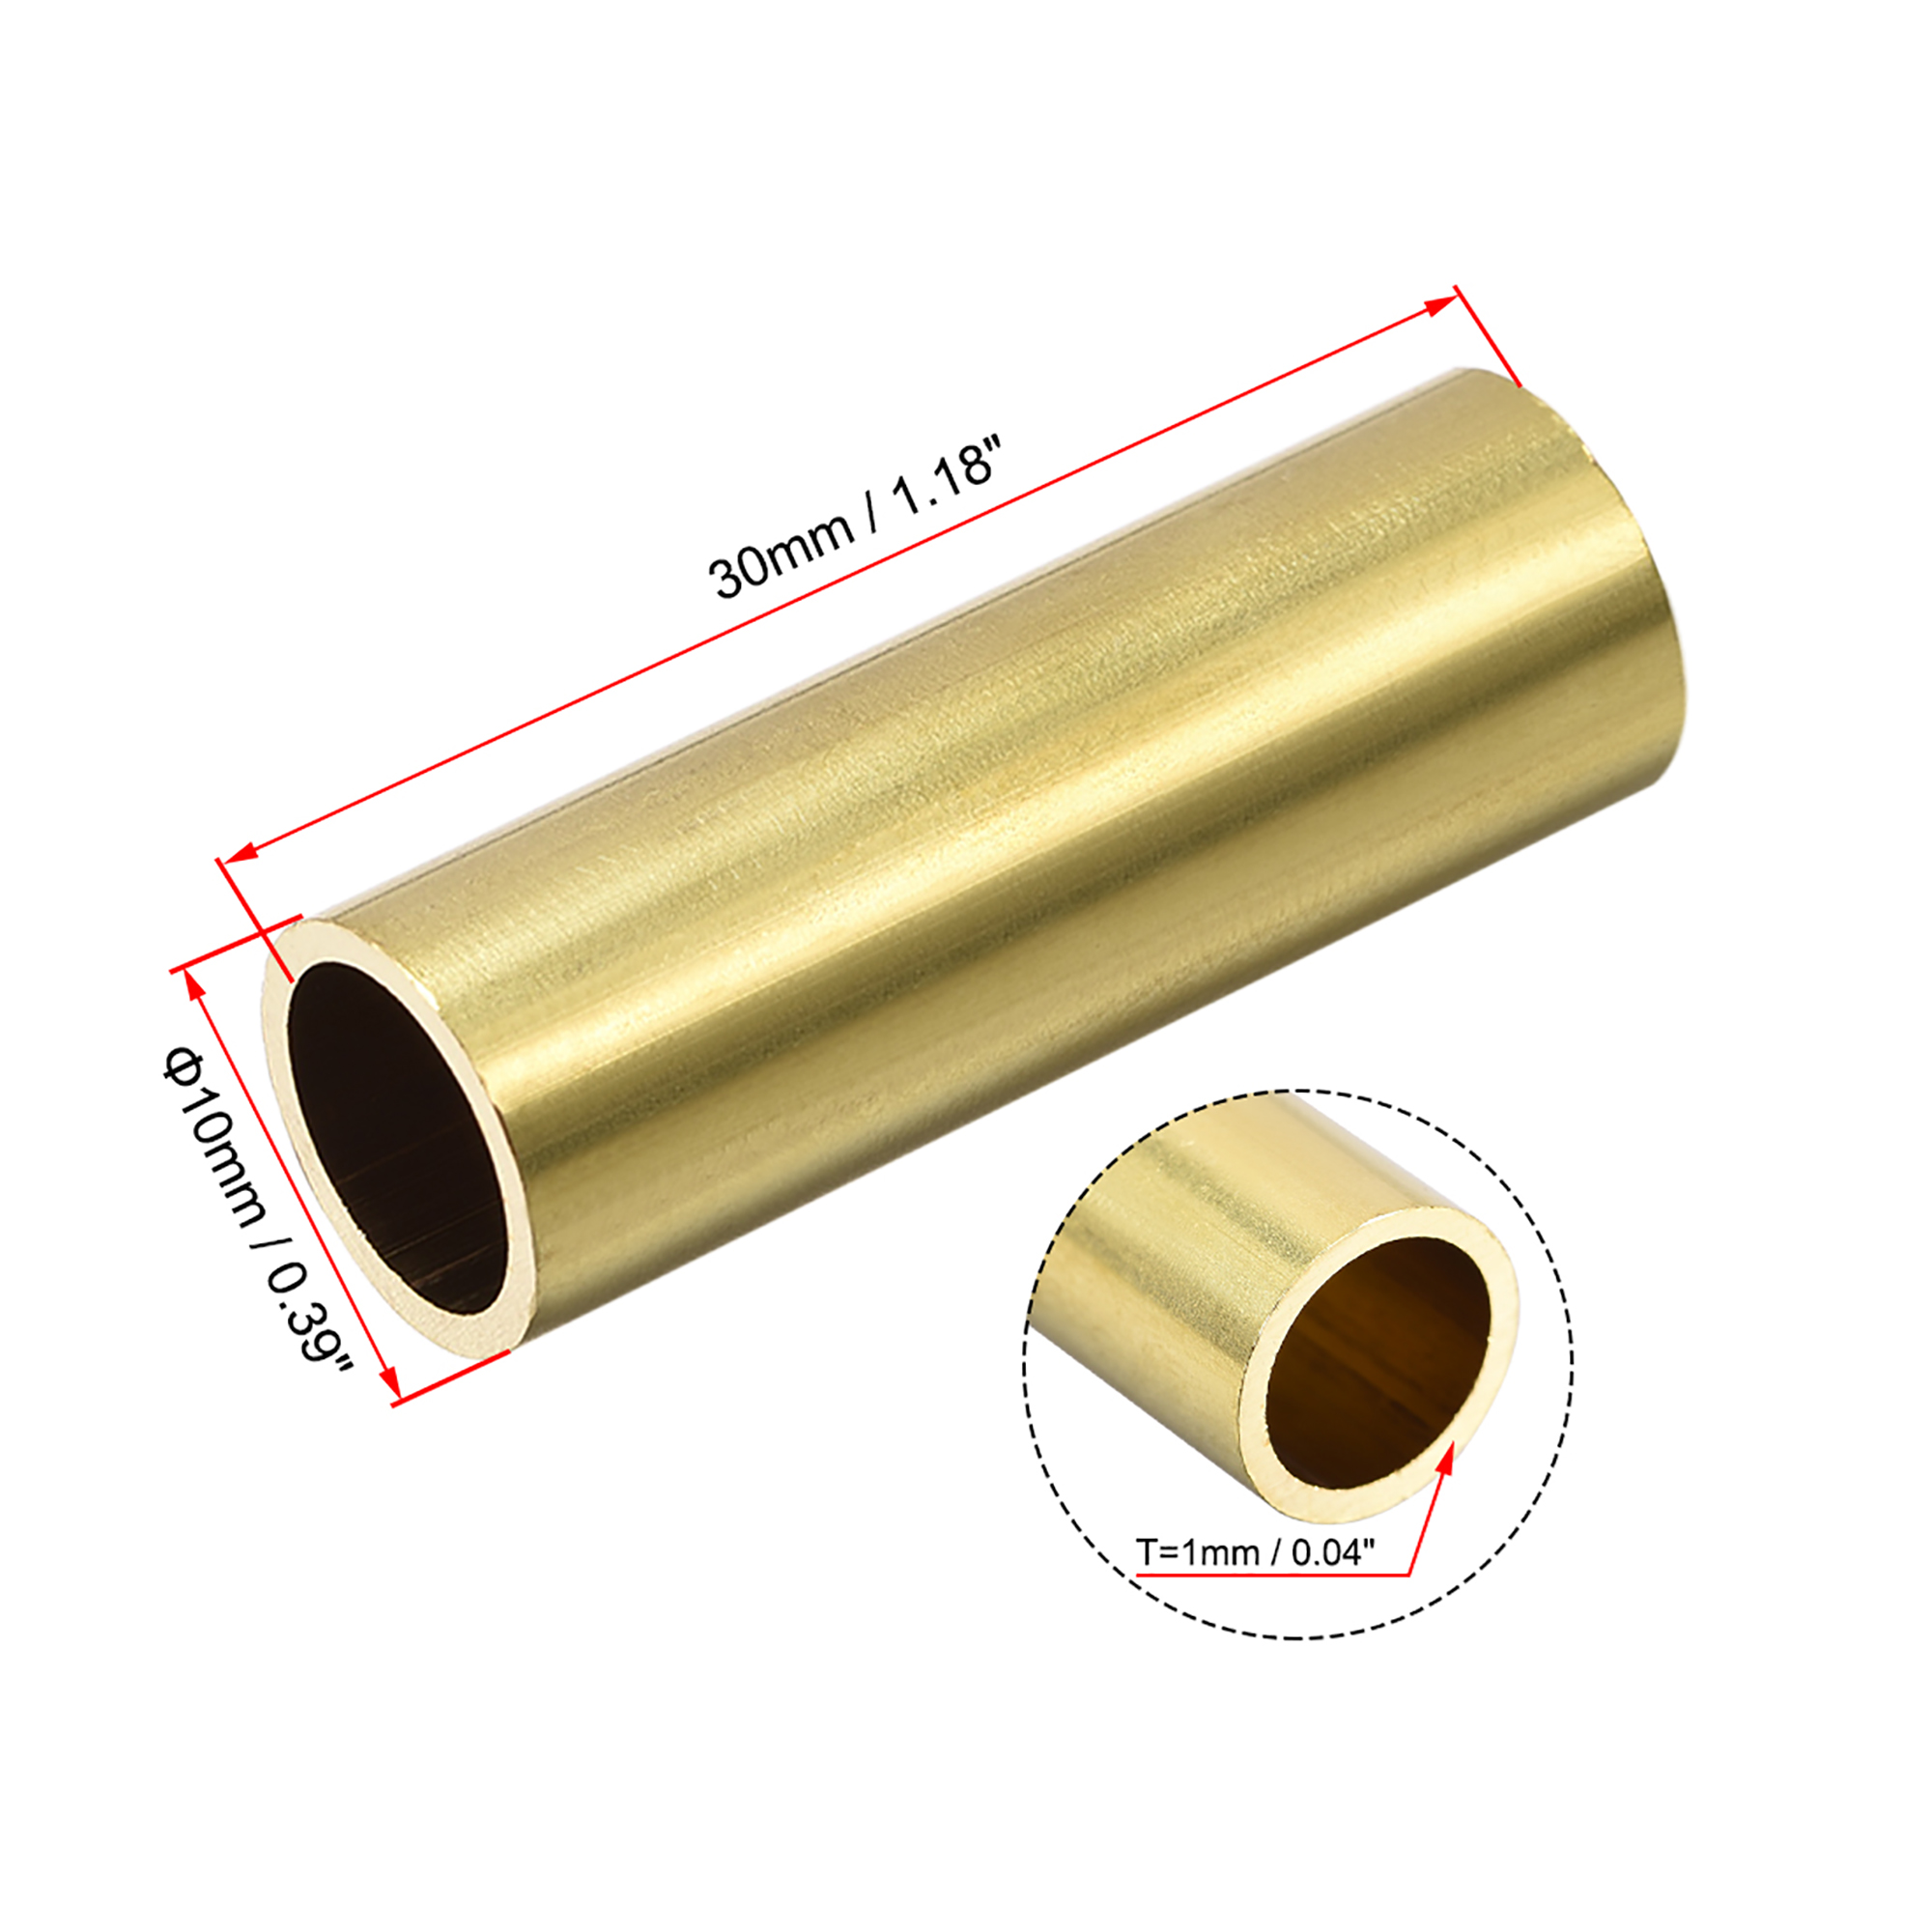 Brass Round Tube 10mm OD 1mm Wall Thickness 30mm Length for DIY Crafts 10 Pcs